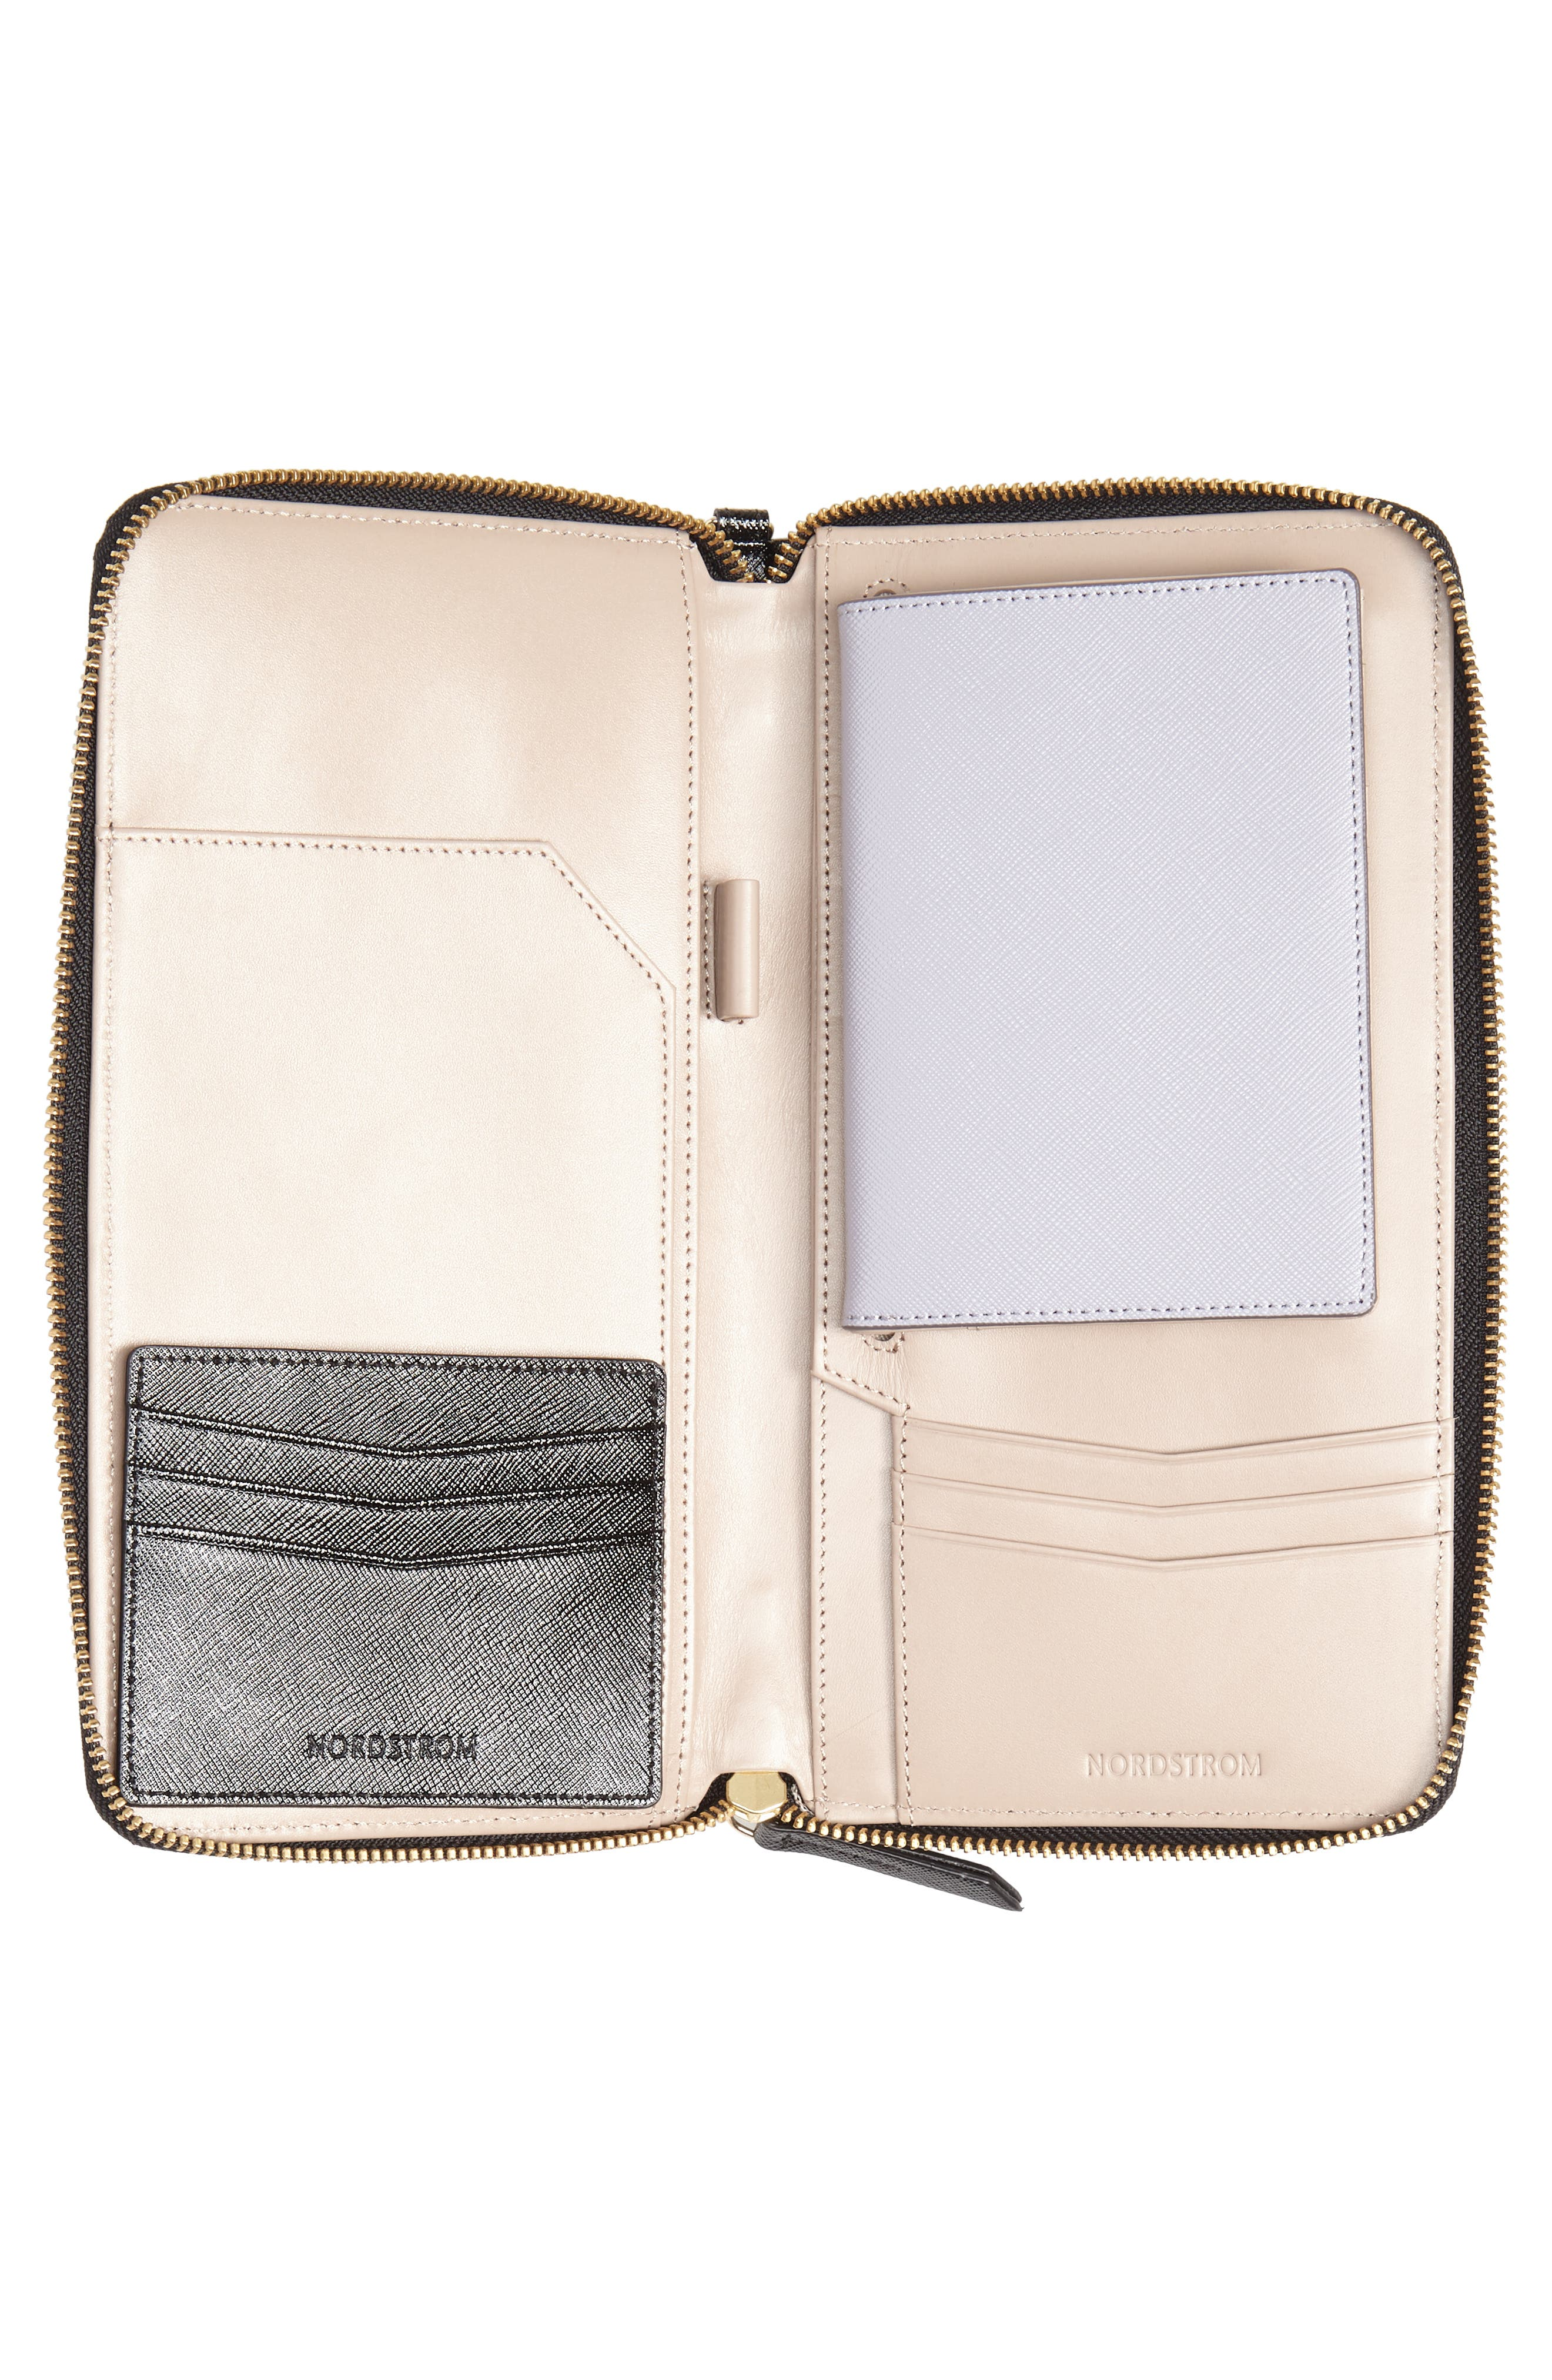 NORDSTROM, Leather Travel Organizer, Alternate thumbnail 4, color, BLACK